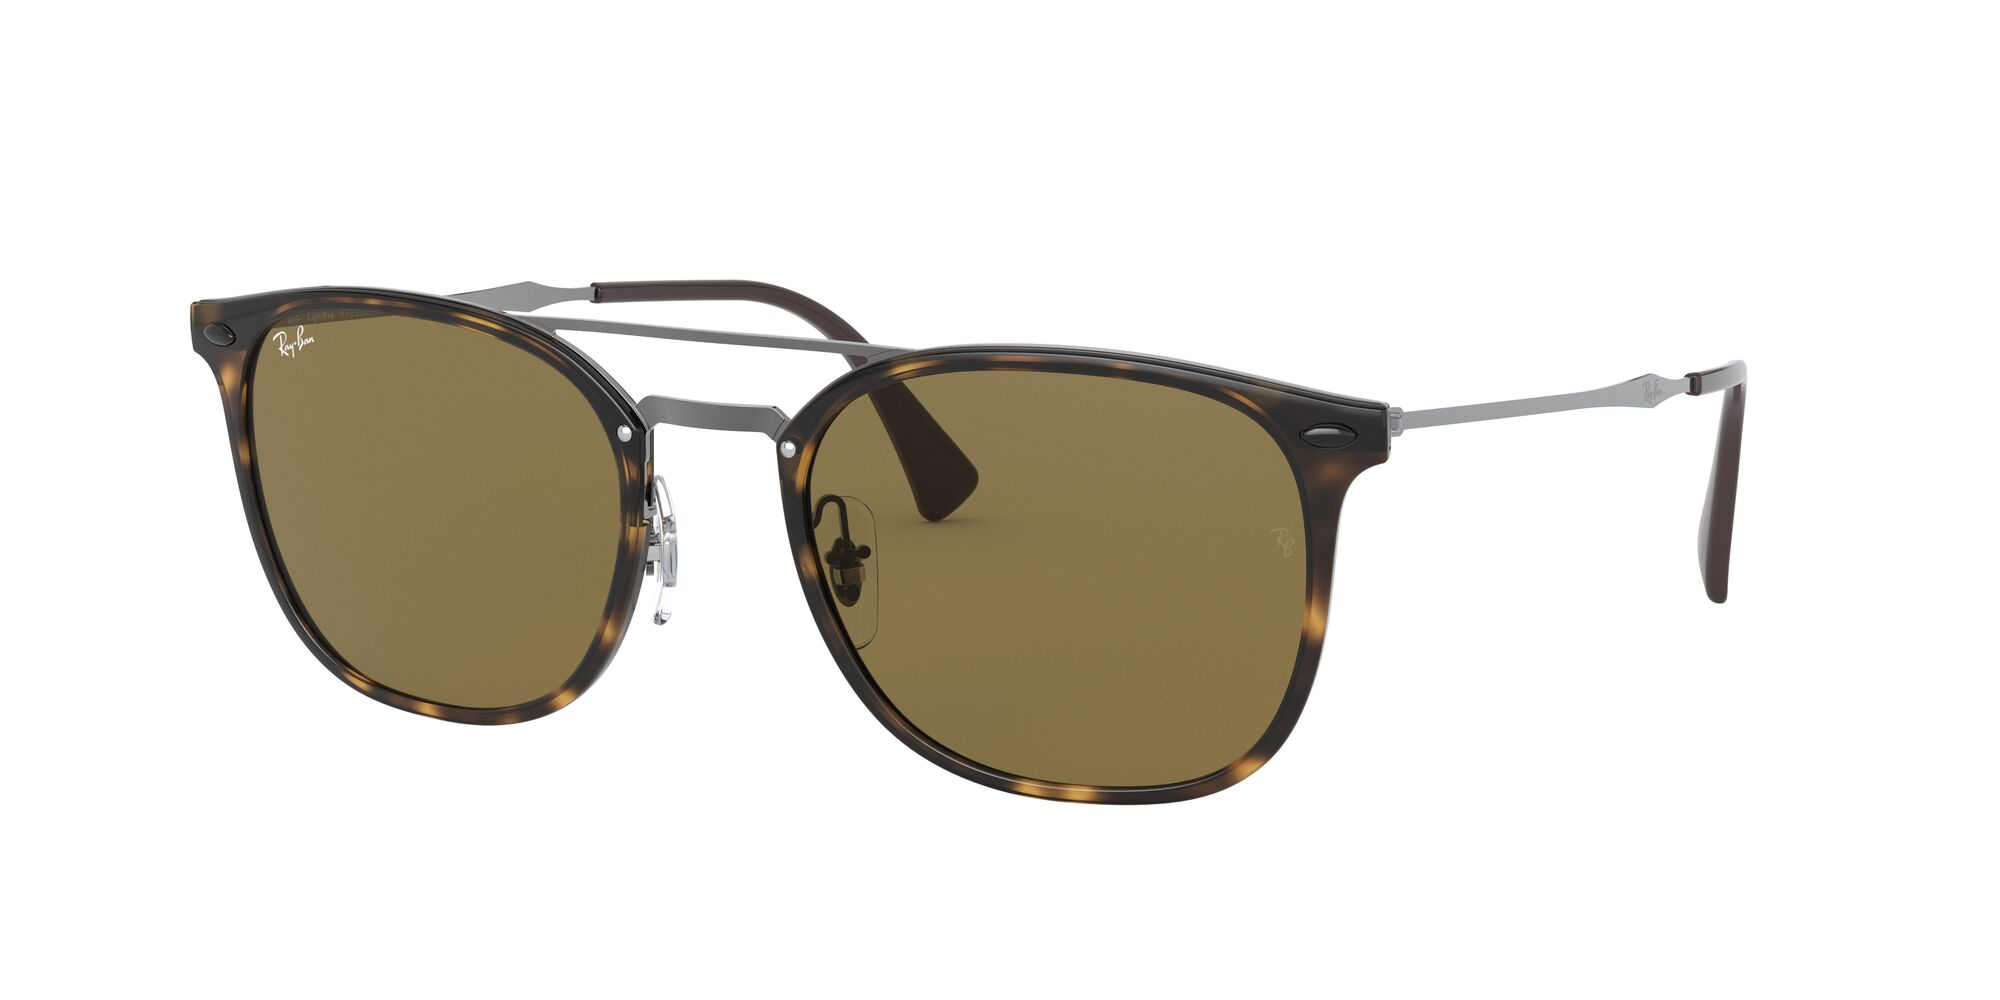 Angle_Left01 Ray-Ban Ray-Ban 0RB4286 710/73 55/21 Zilver, Bruin/Bruin